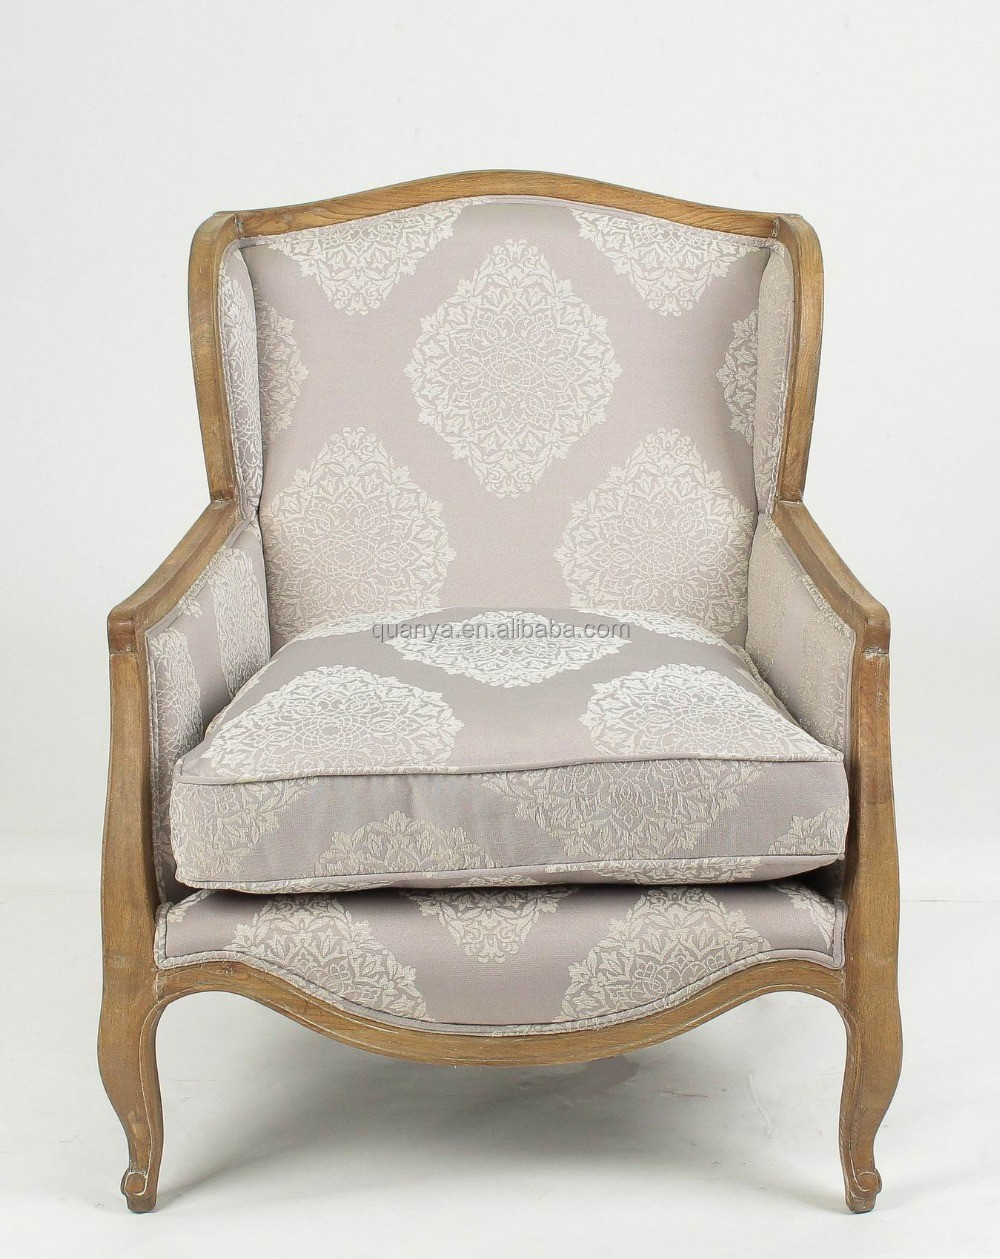 Antique upholstered chair styles - Antique Living Room Chairs Antique Living Room Chairs Suppliers And Manufacturers At Alibaba Com